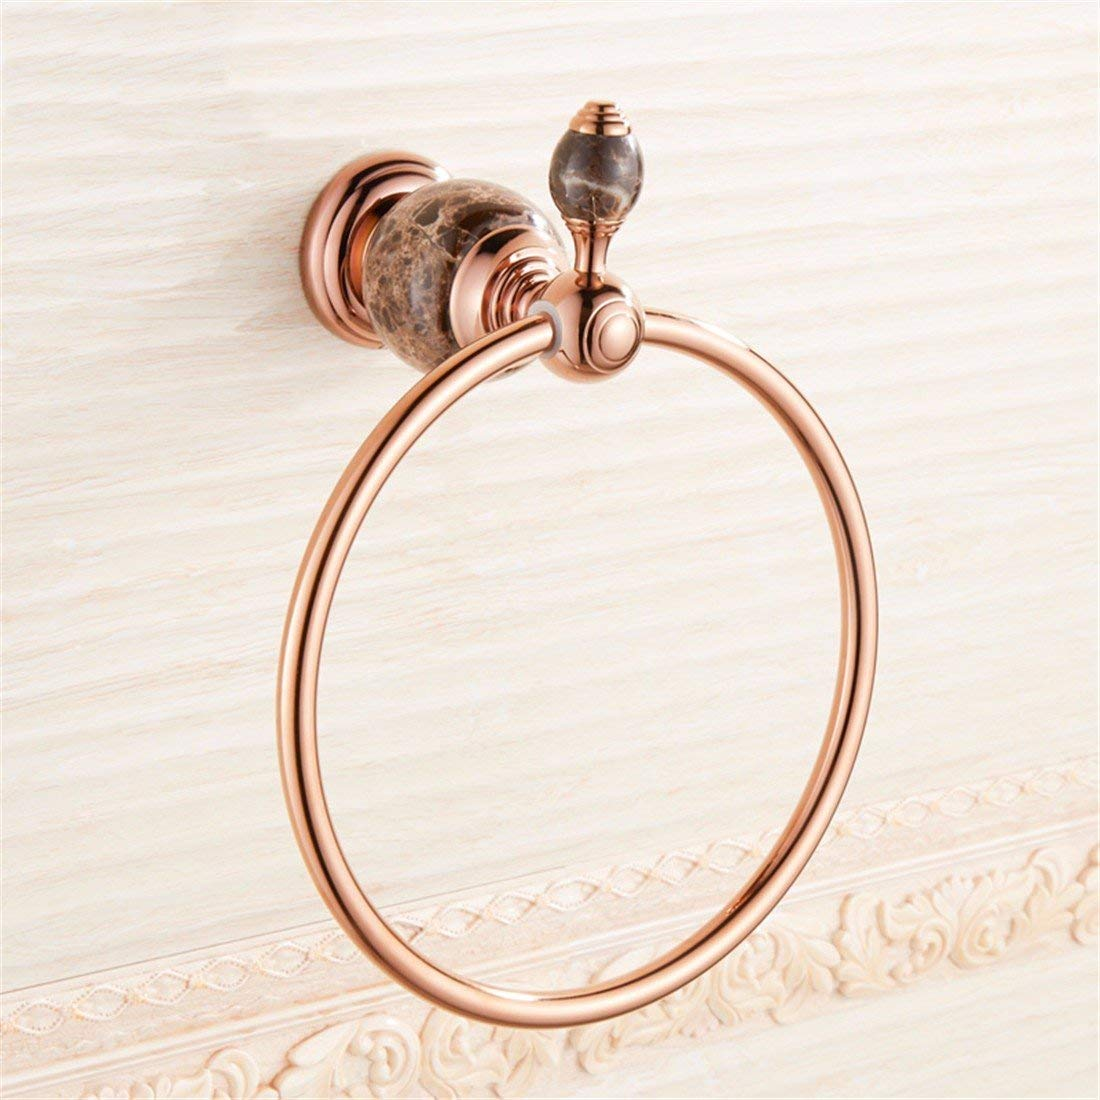 LAONA Continental antique rose gold black jade bathroom accessory kit towel bar toilet paper holder, Towel Ring